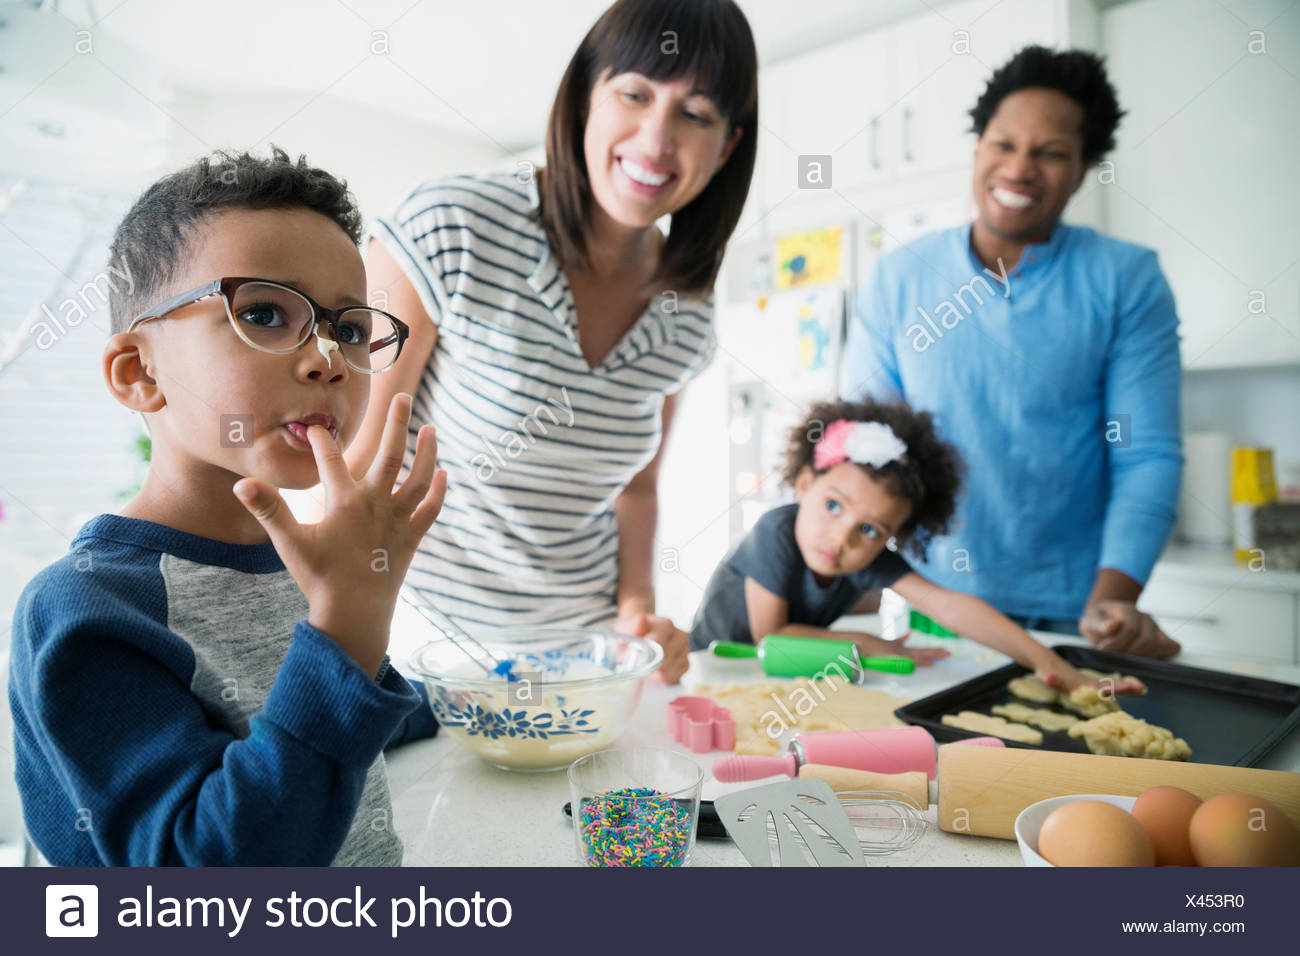 Boy with cookie dough on nose licking finger - Stock Image